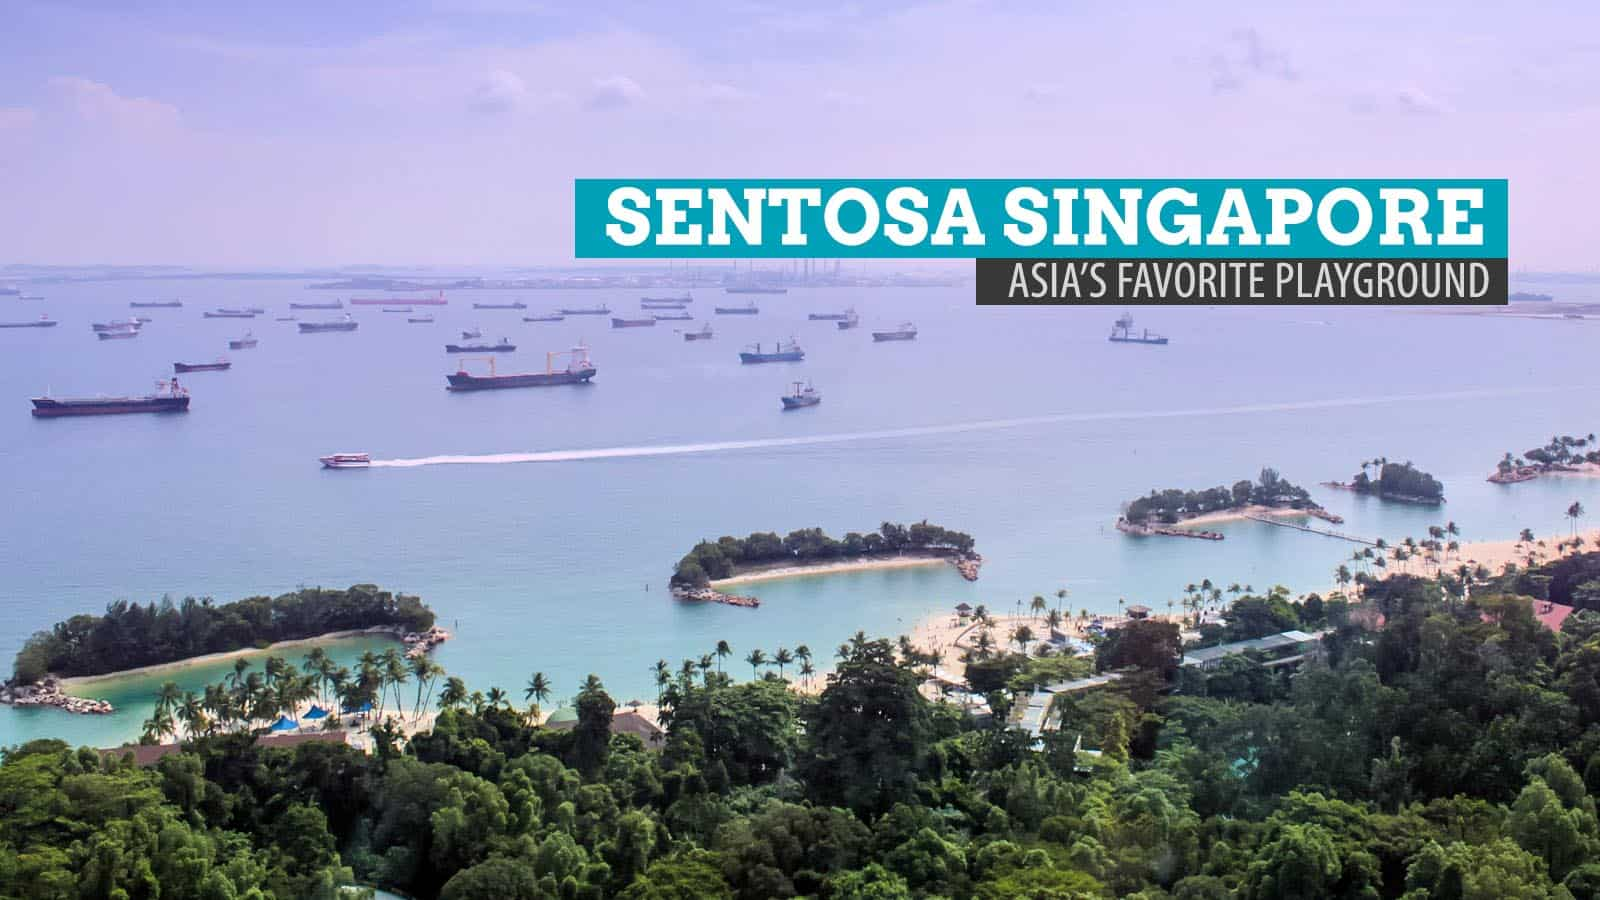 Sentosa Singapore Becoming a Kid Again at Asias Favorite